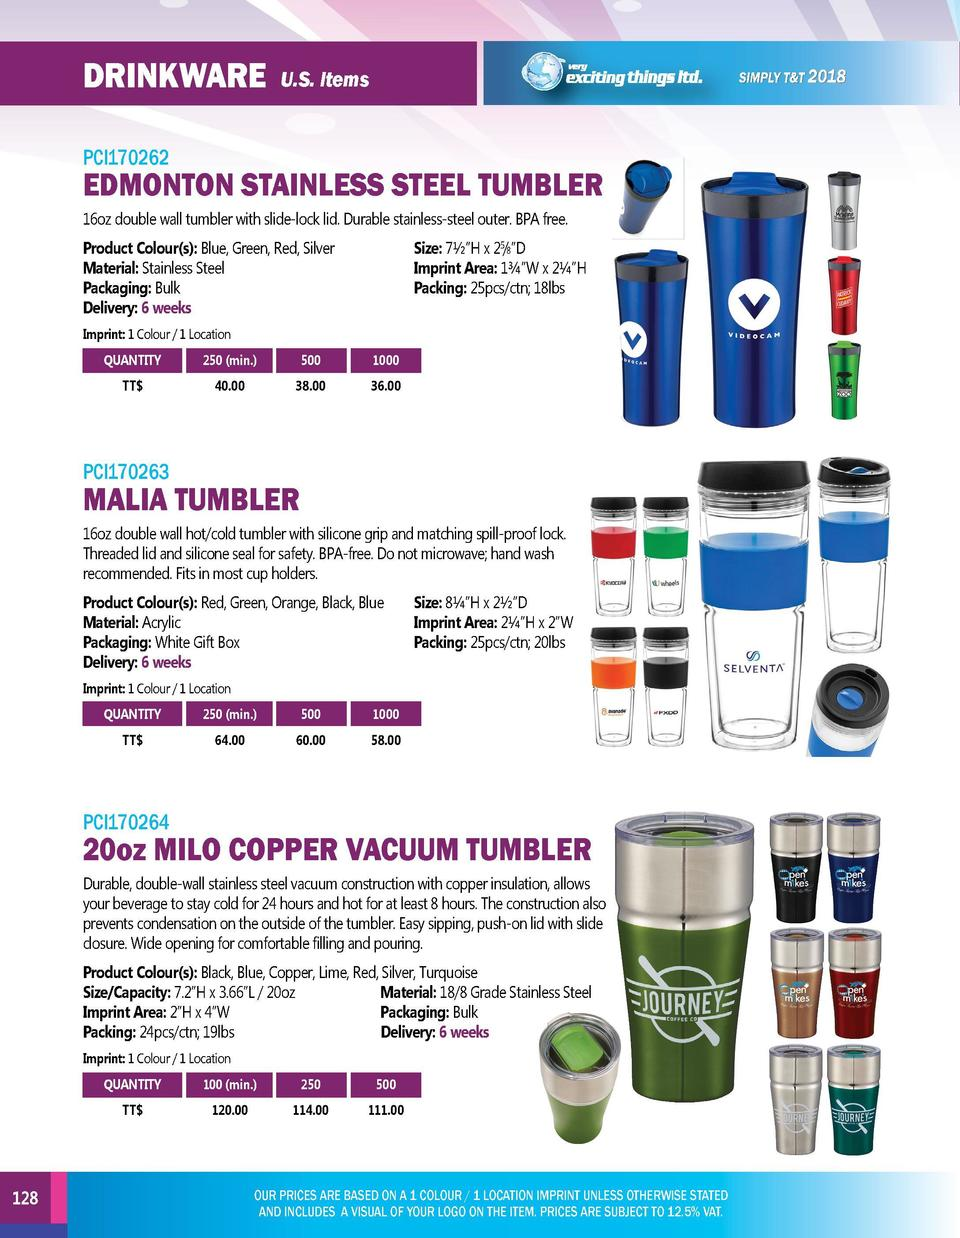 DRINKWARE  DRINKWARE  U.S. Items  PCI170262  EDMONTON STAINLESS STEEL TUMBLER 16oz double wall tumbler with slide-lock lid...